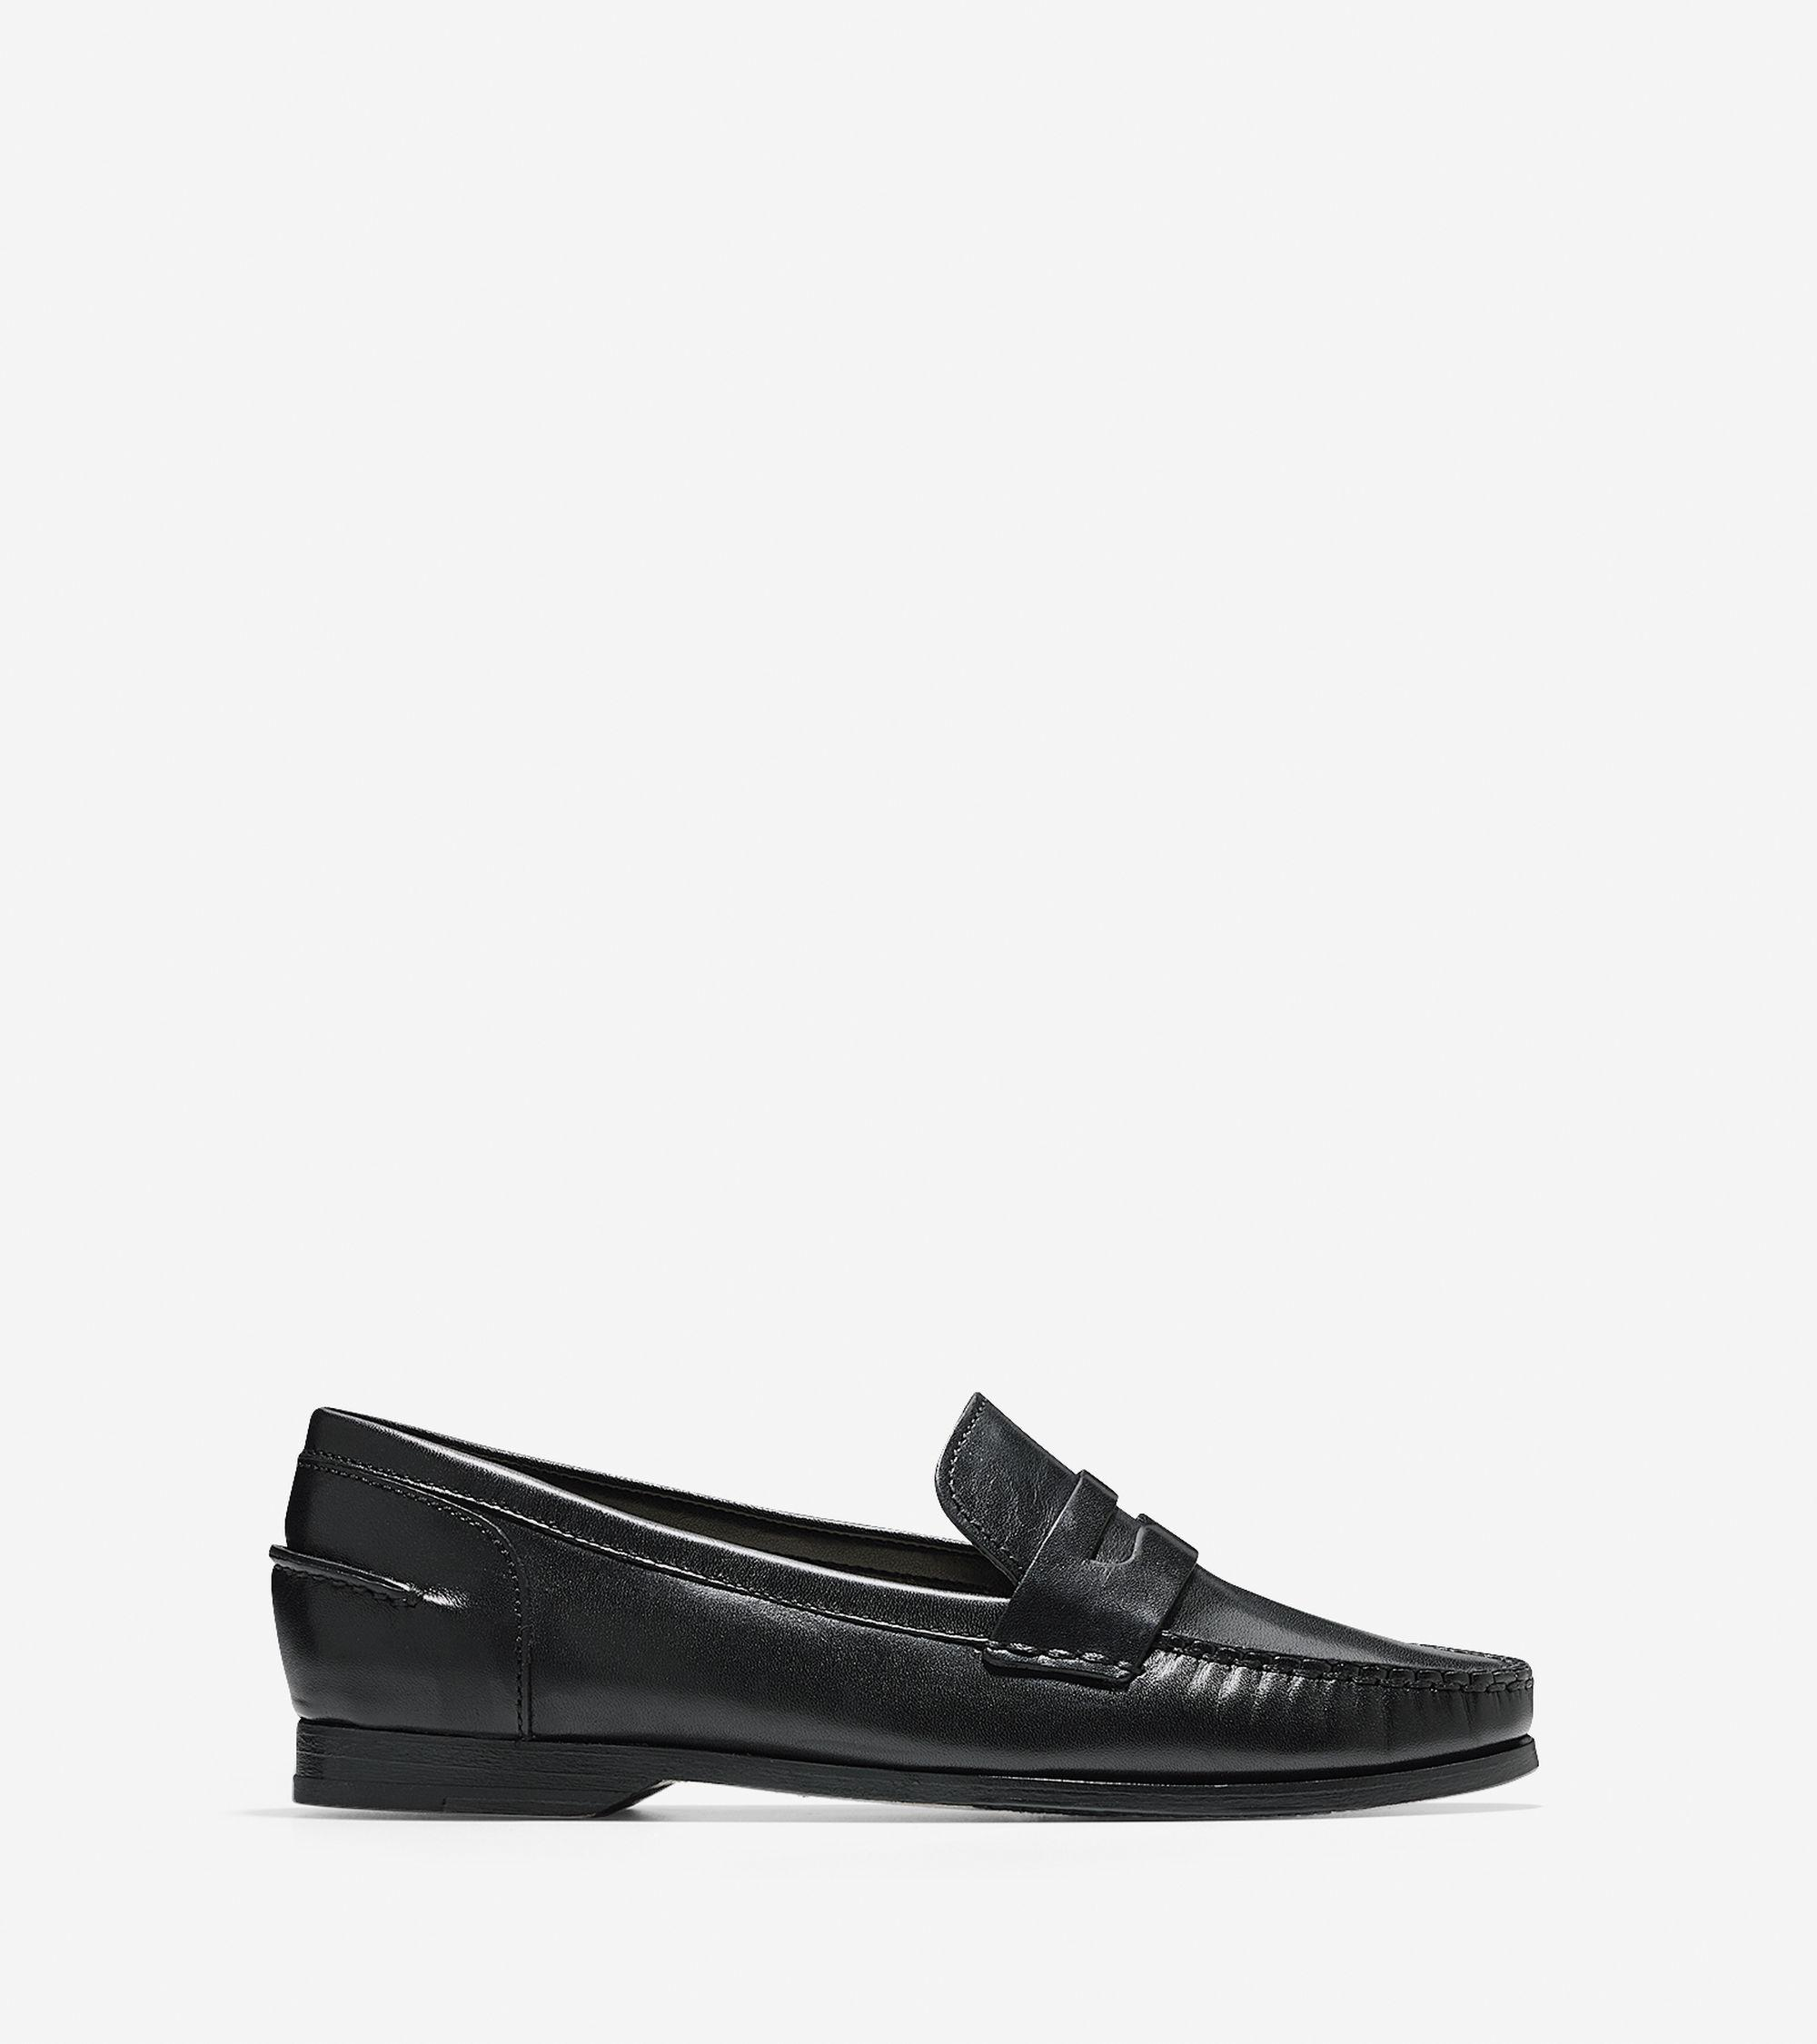 Cole haan Women's Pinch Grand Penny Loafer in Black | Lyst